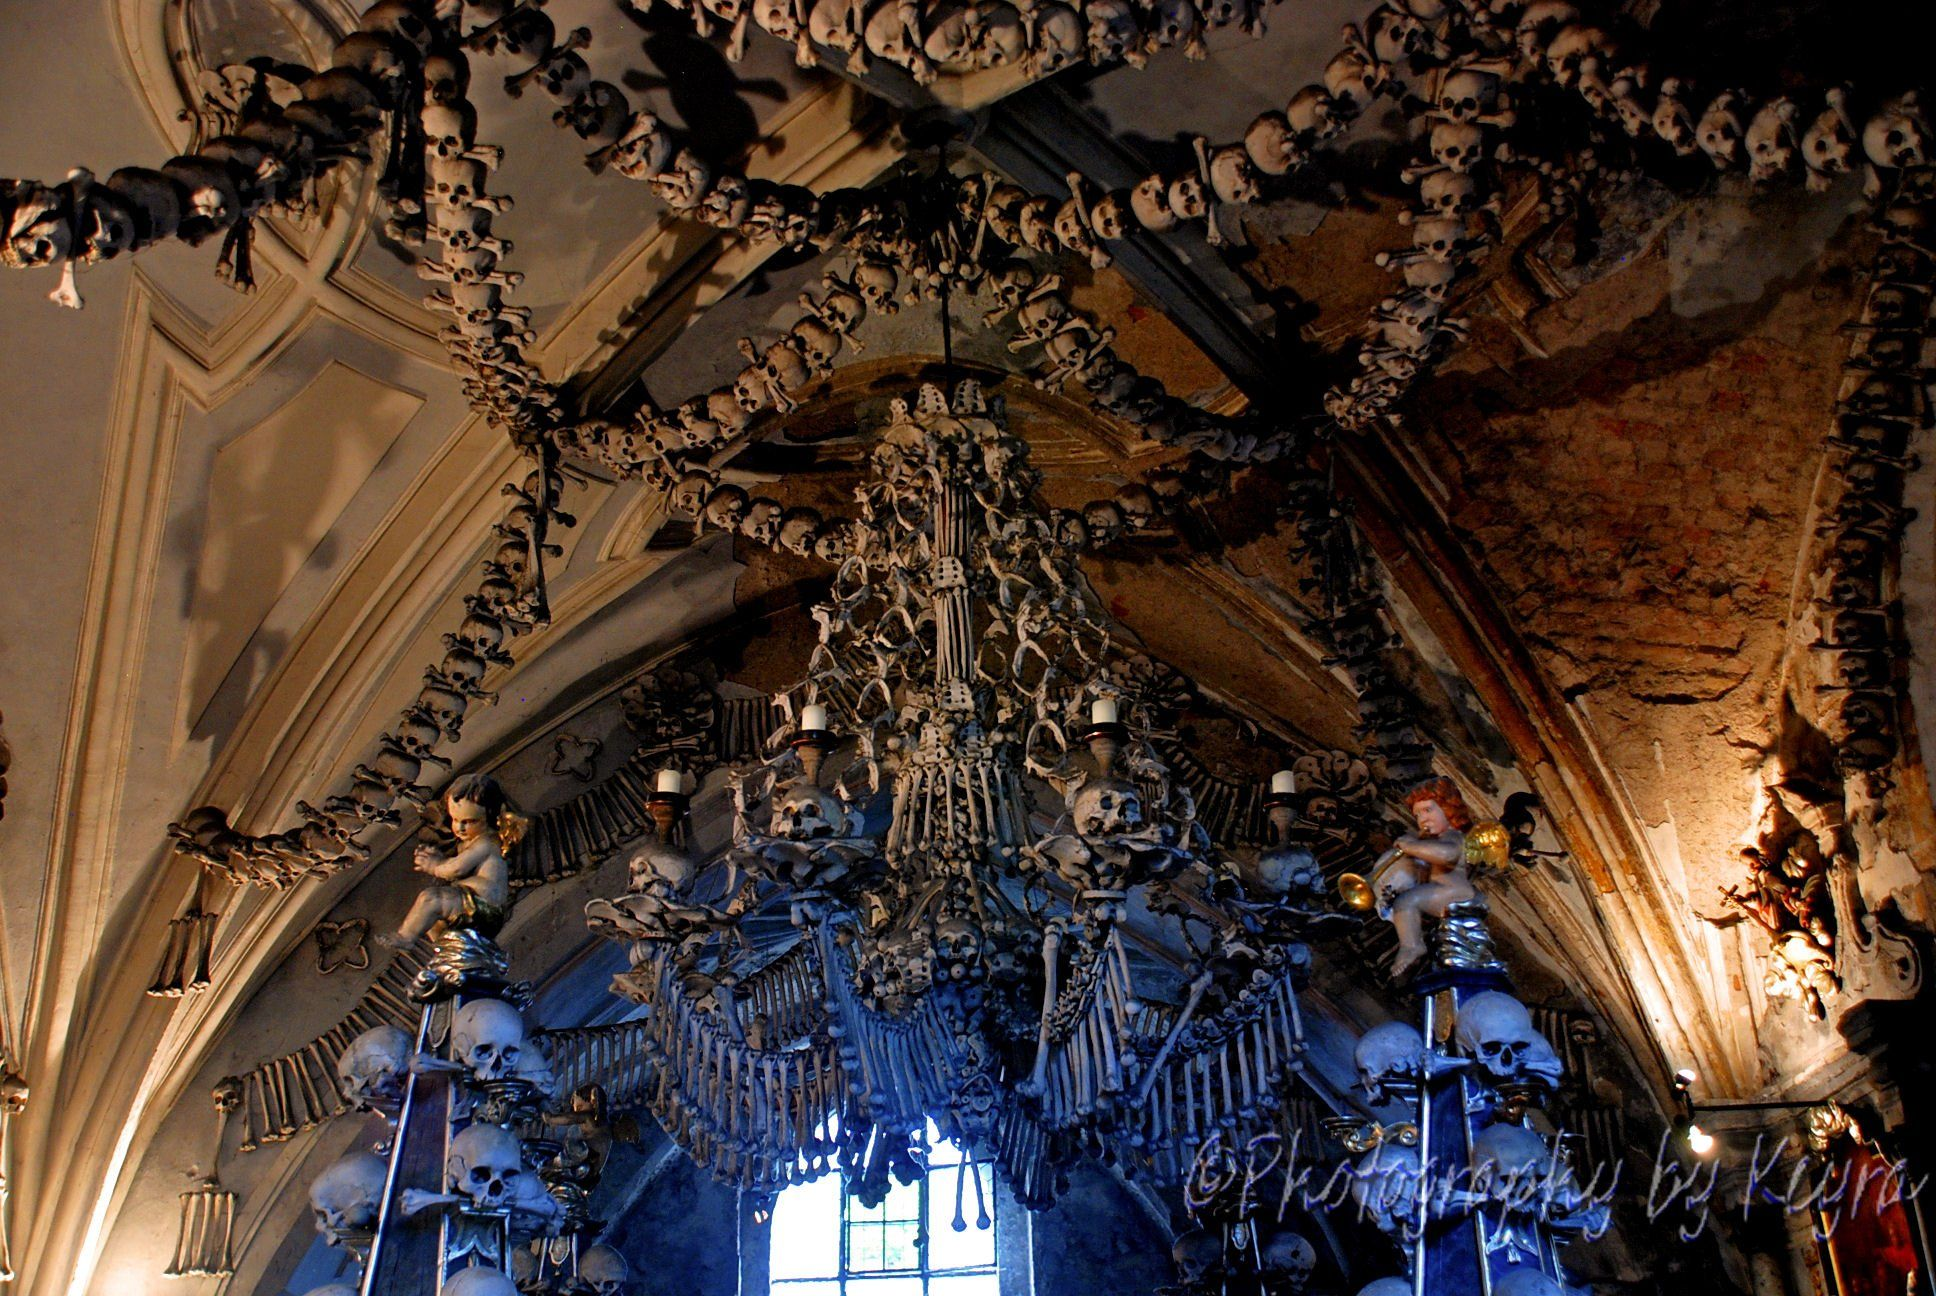 Sedlec ossuary kostnice sedlec the bone chandelier kutn hora sedlec ossuary kostnice sedlec the bone chandelier kutn hora czech republic http aloadofball Image collections